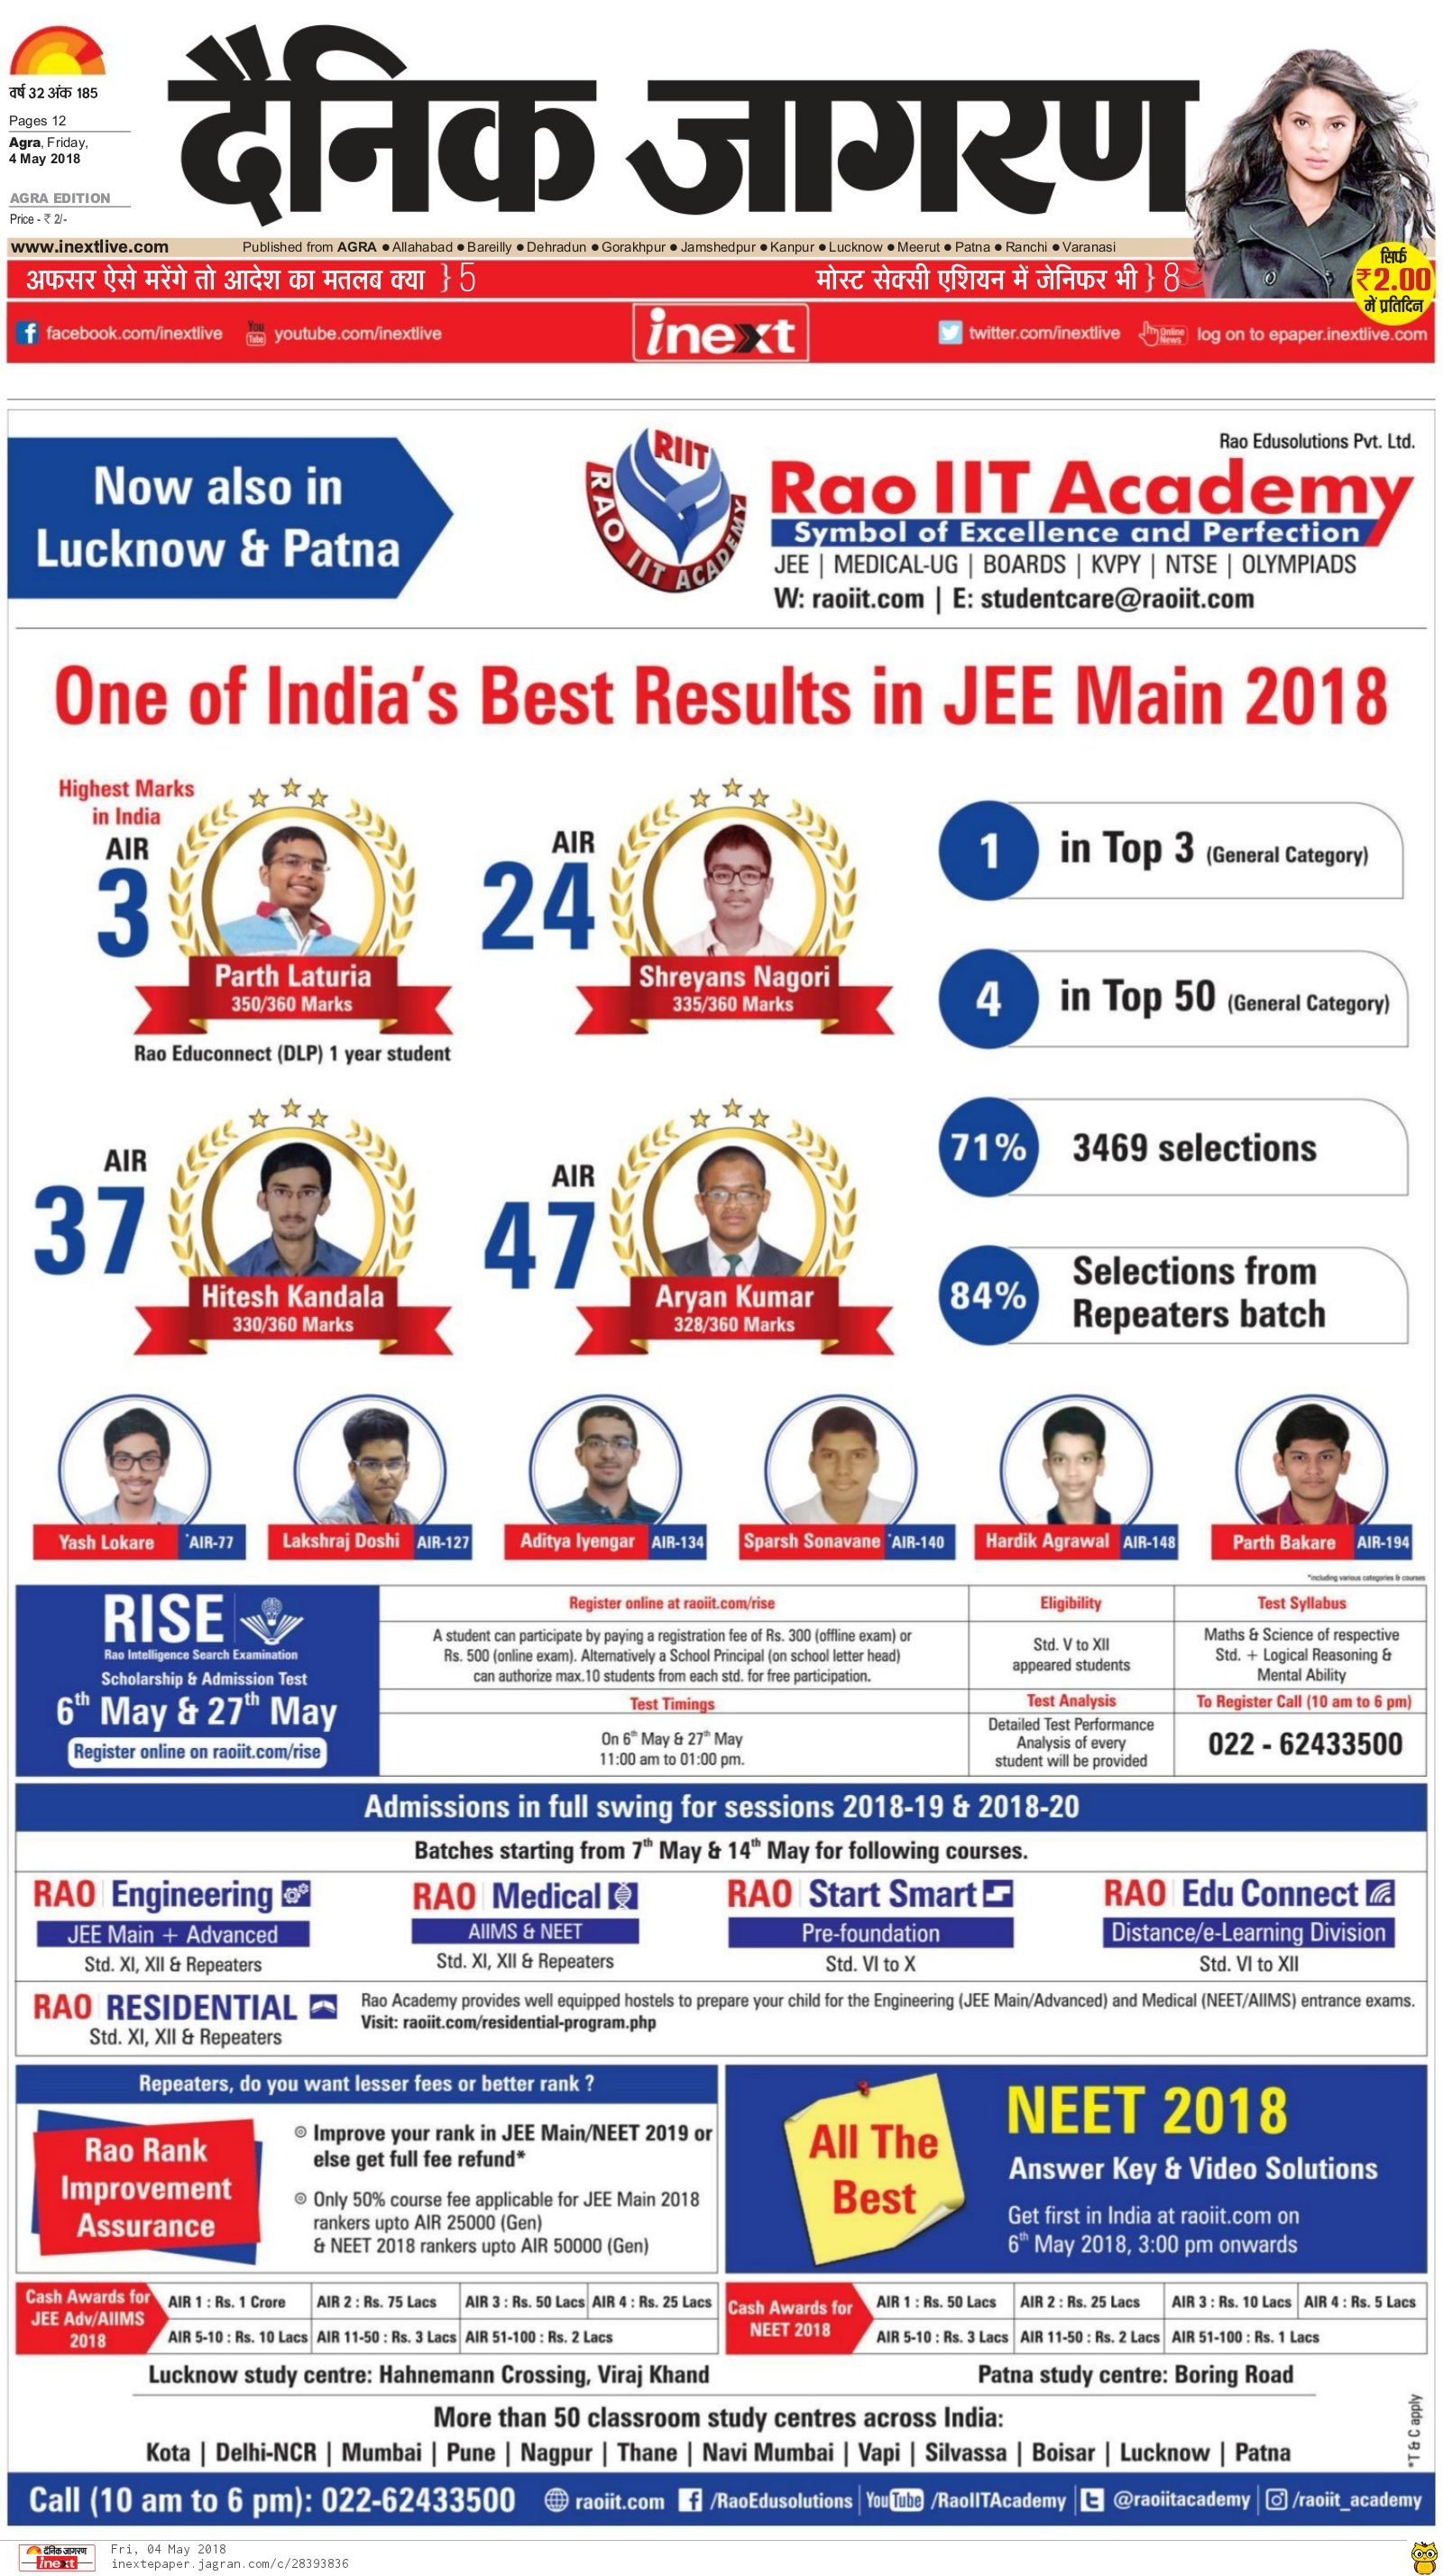 Advertisement of Rao IIT Academy in Inext jagranr All editions